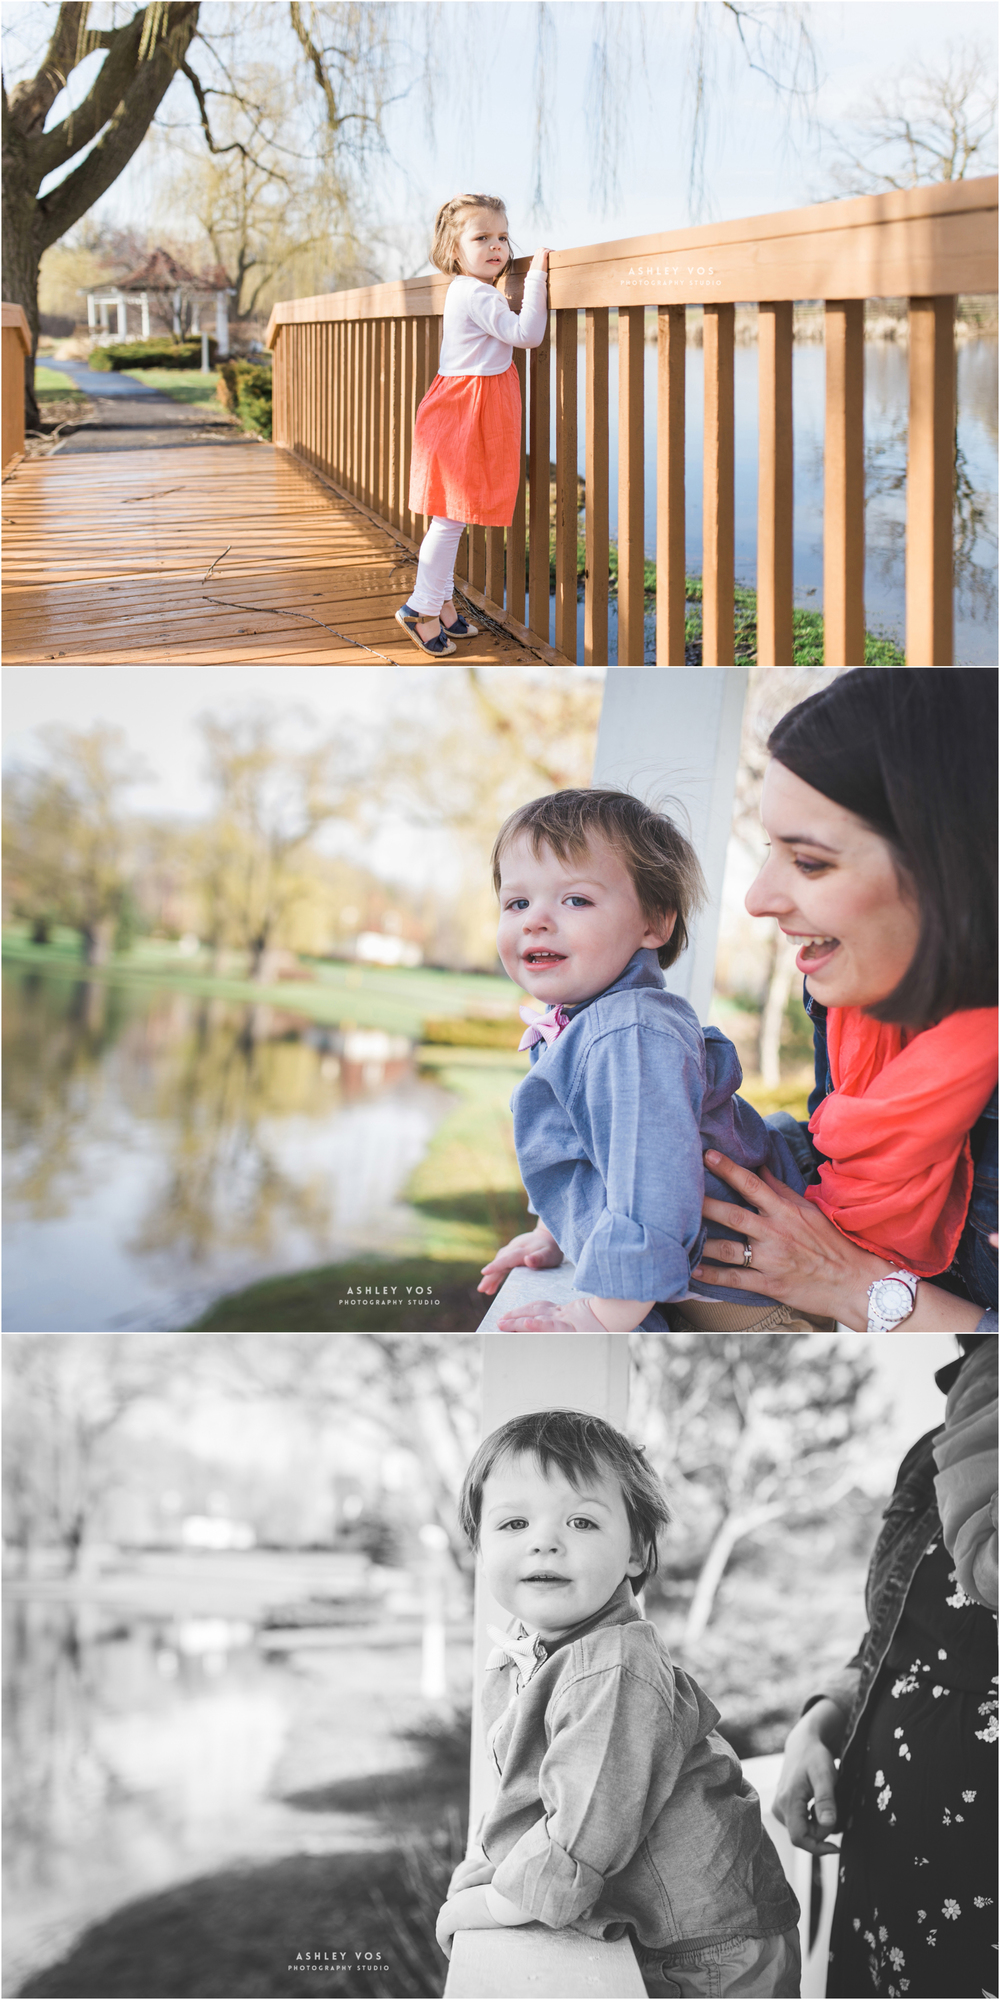 Ashley Vos Photography Seattle Lifestyle Family Photography_0031.jpg